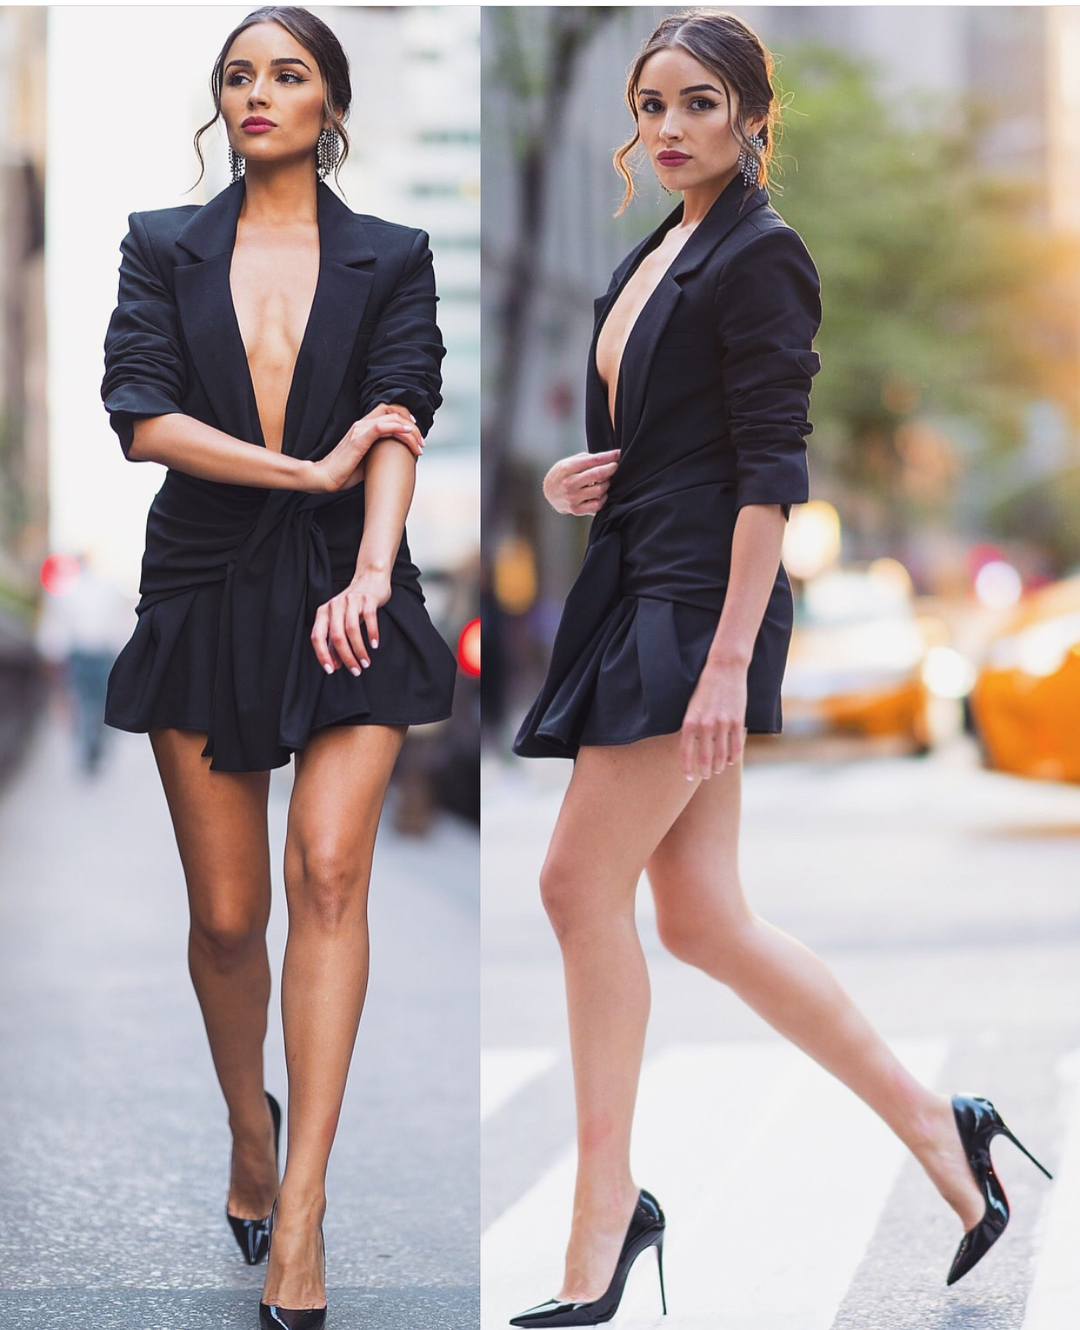 Black Blazer Dress For Summer Cocktail Events 2019